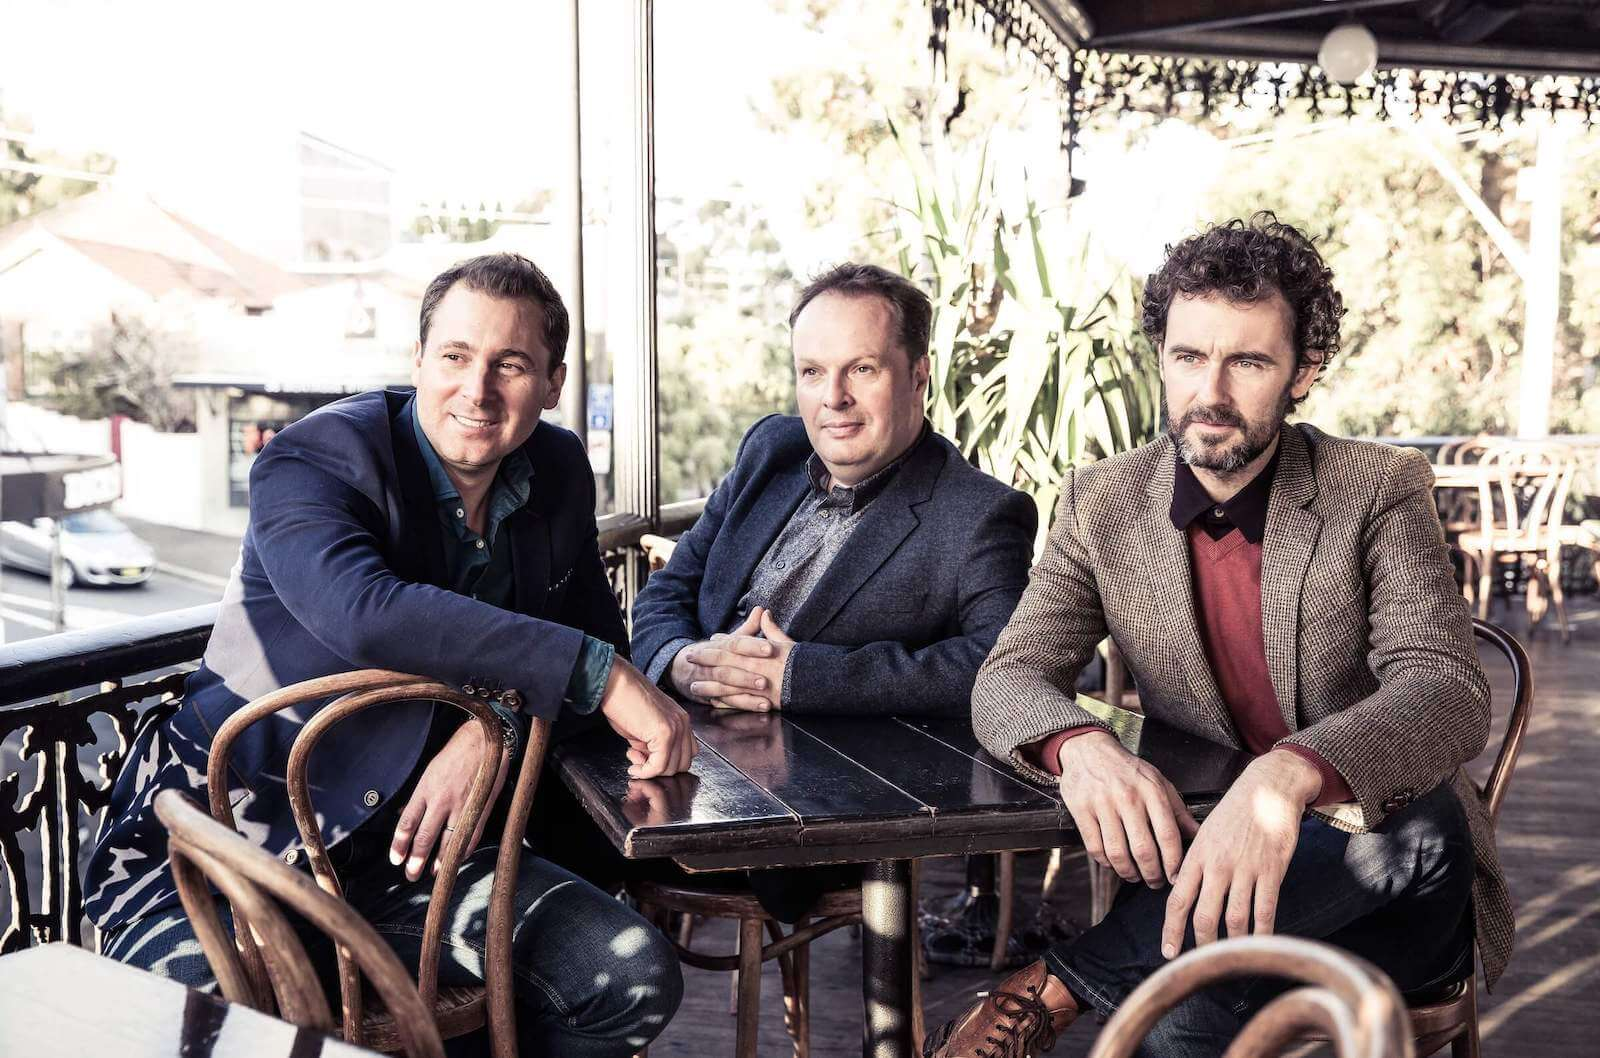 The three members of The Celtic Tenors on a sunny day on a Cafe Patio